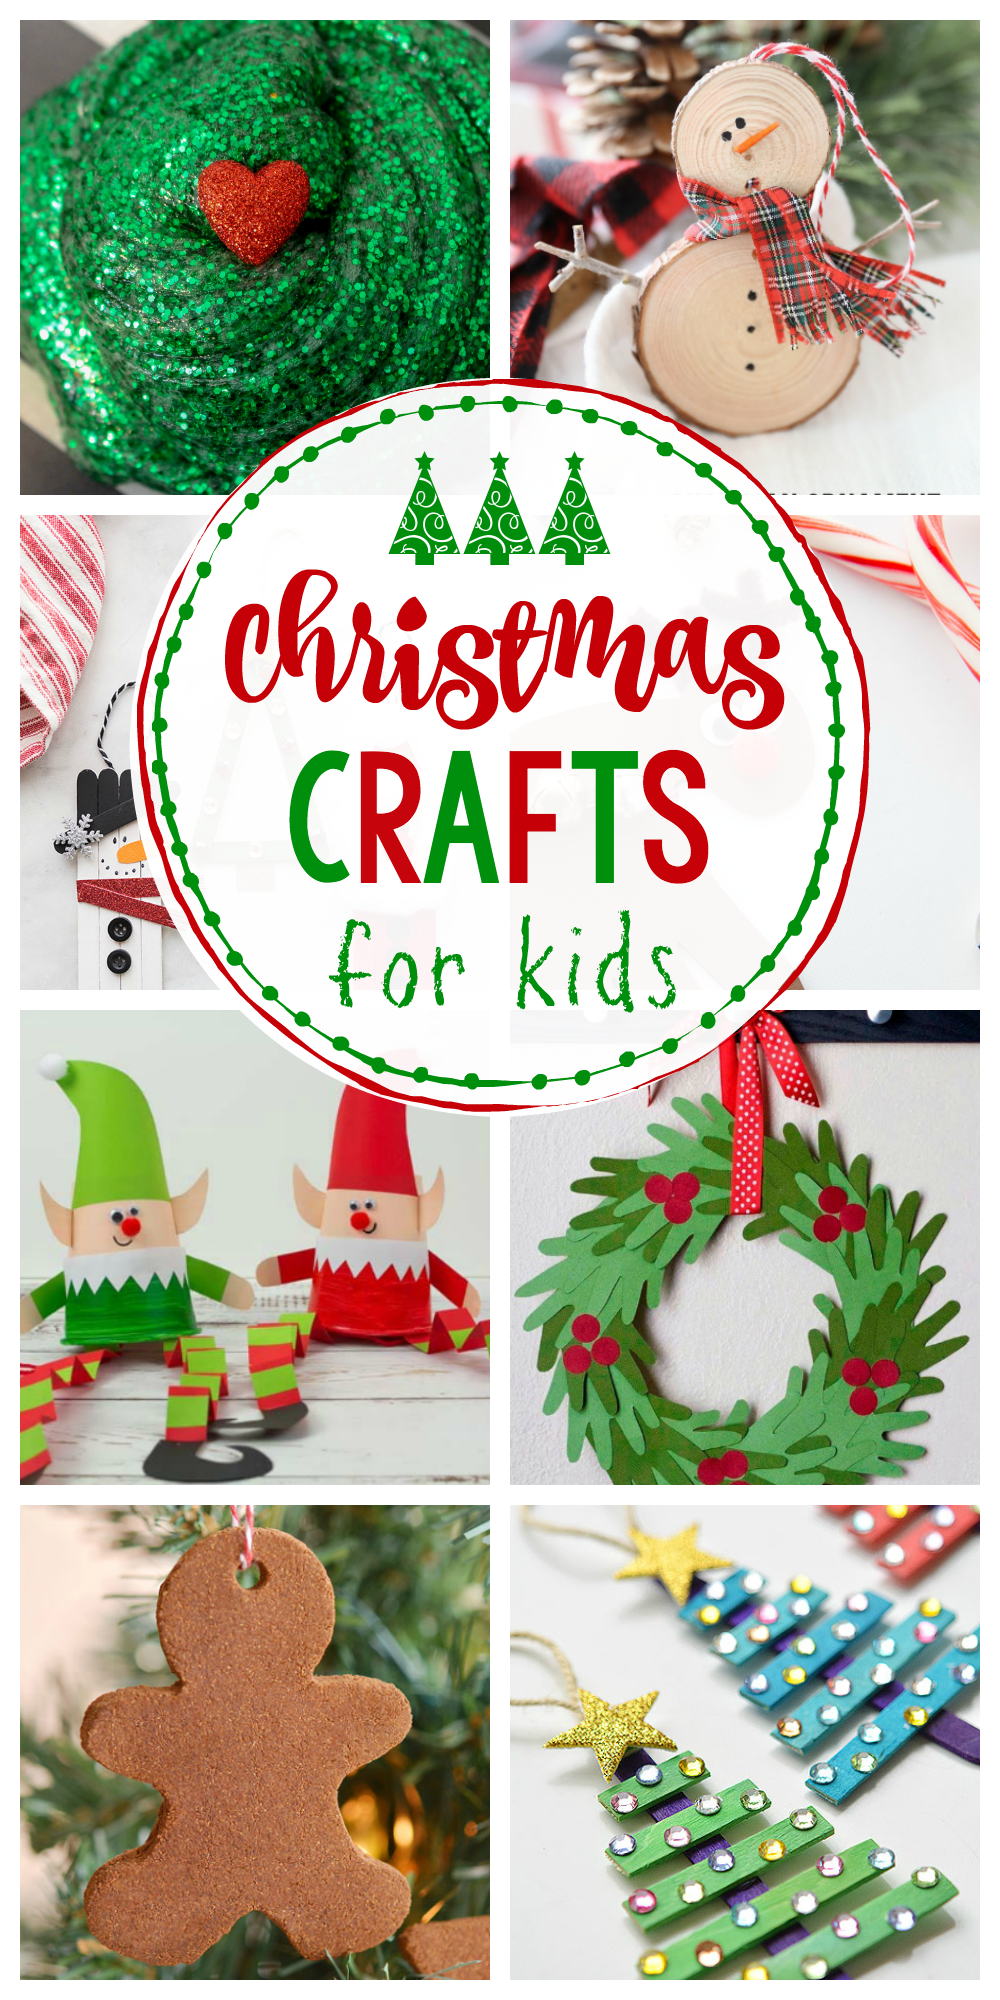 25 easy christmas crafts for kids christmas crafts for kids christmas crafts kids christmas party 25 easy christmas crafts for kids